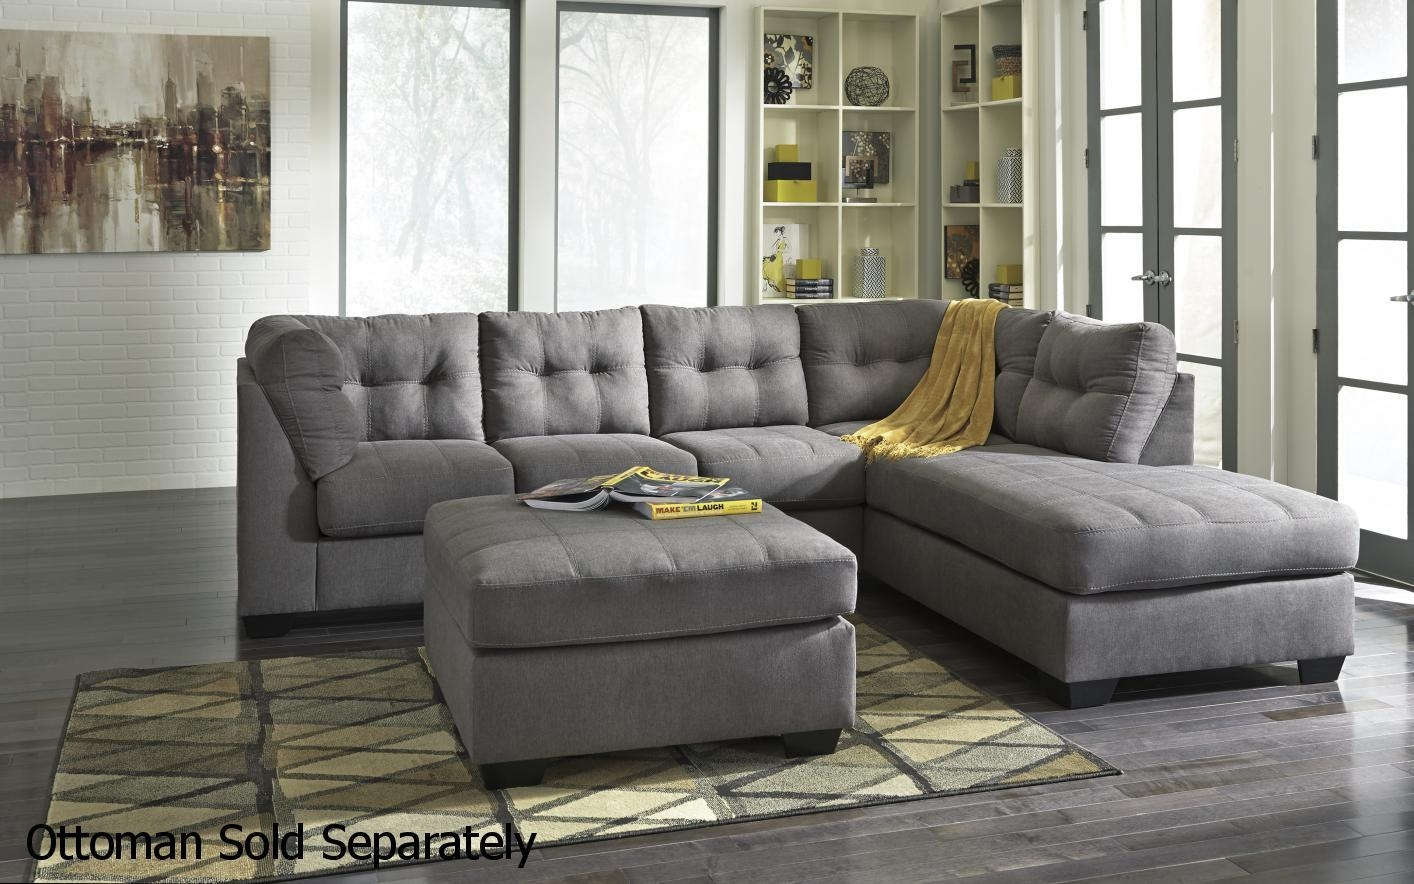 Sofas Center Charcoal Gray Sectional Sofa Beautiful Pictures – Ftfpgh For Charcoal Gray Sectional Sofas (View 7 of 20)